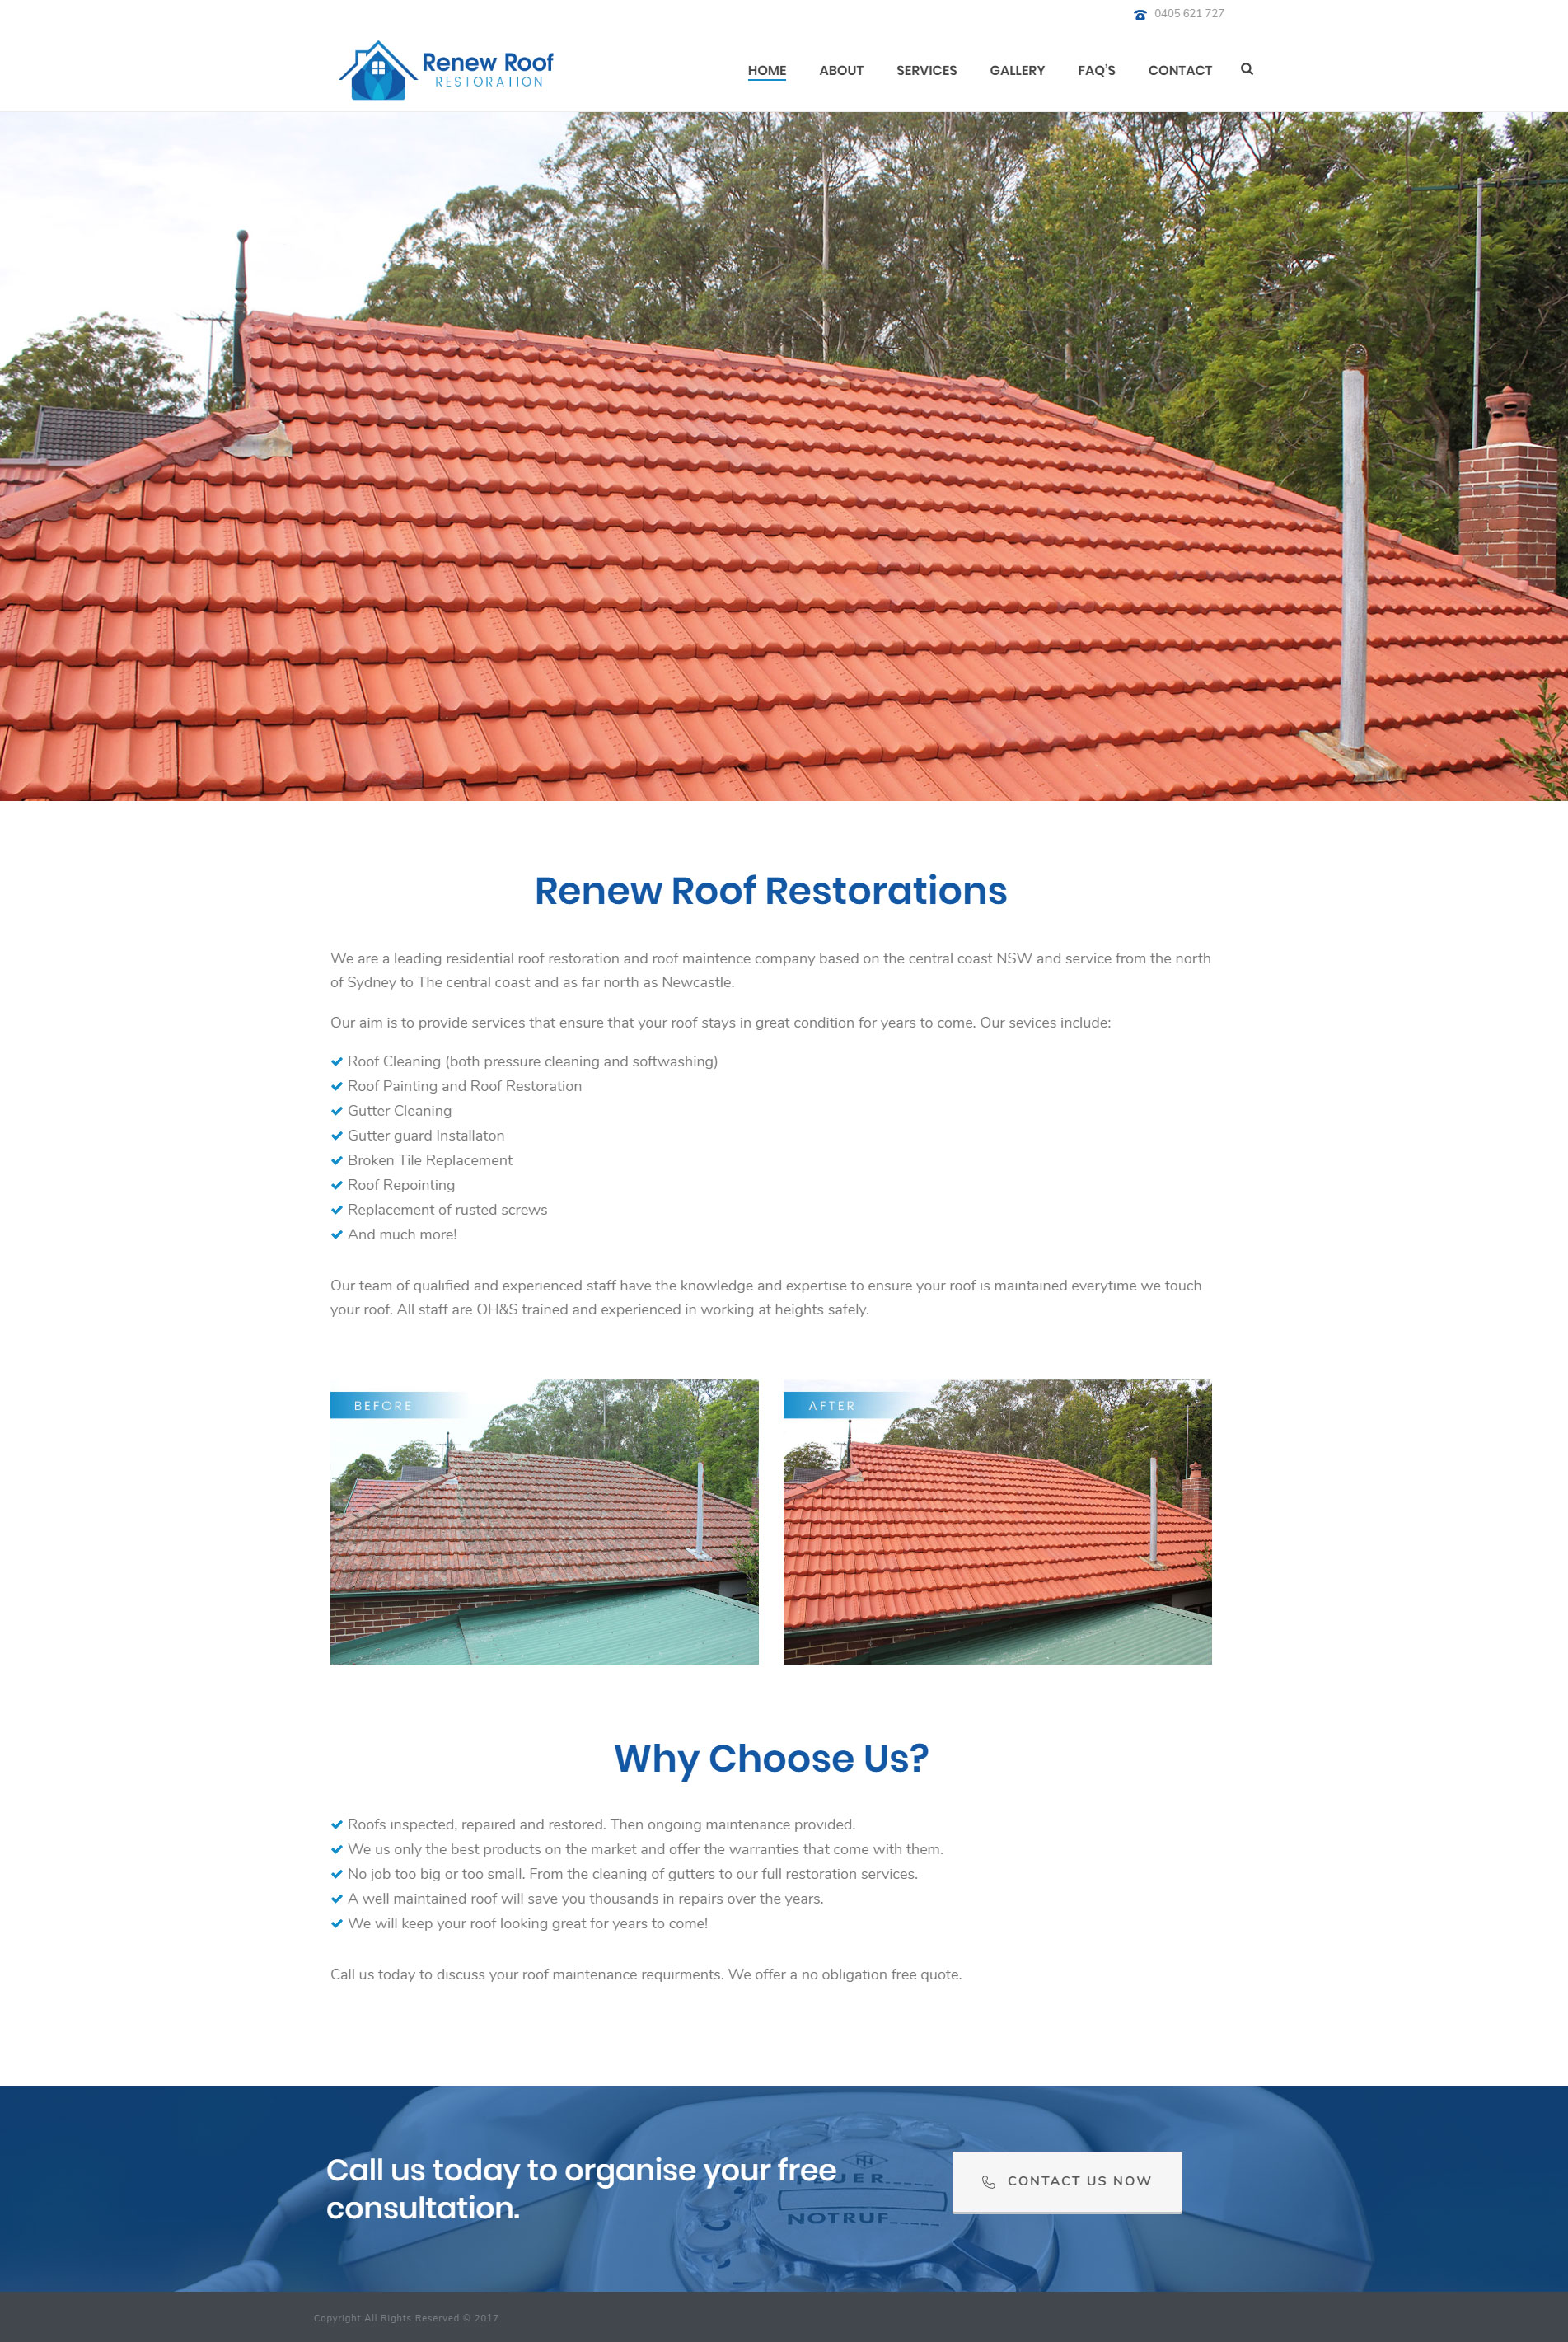 renewroofrestoration-full